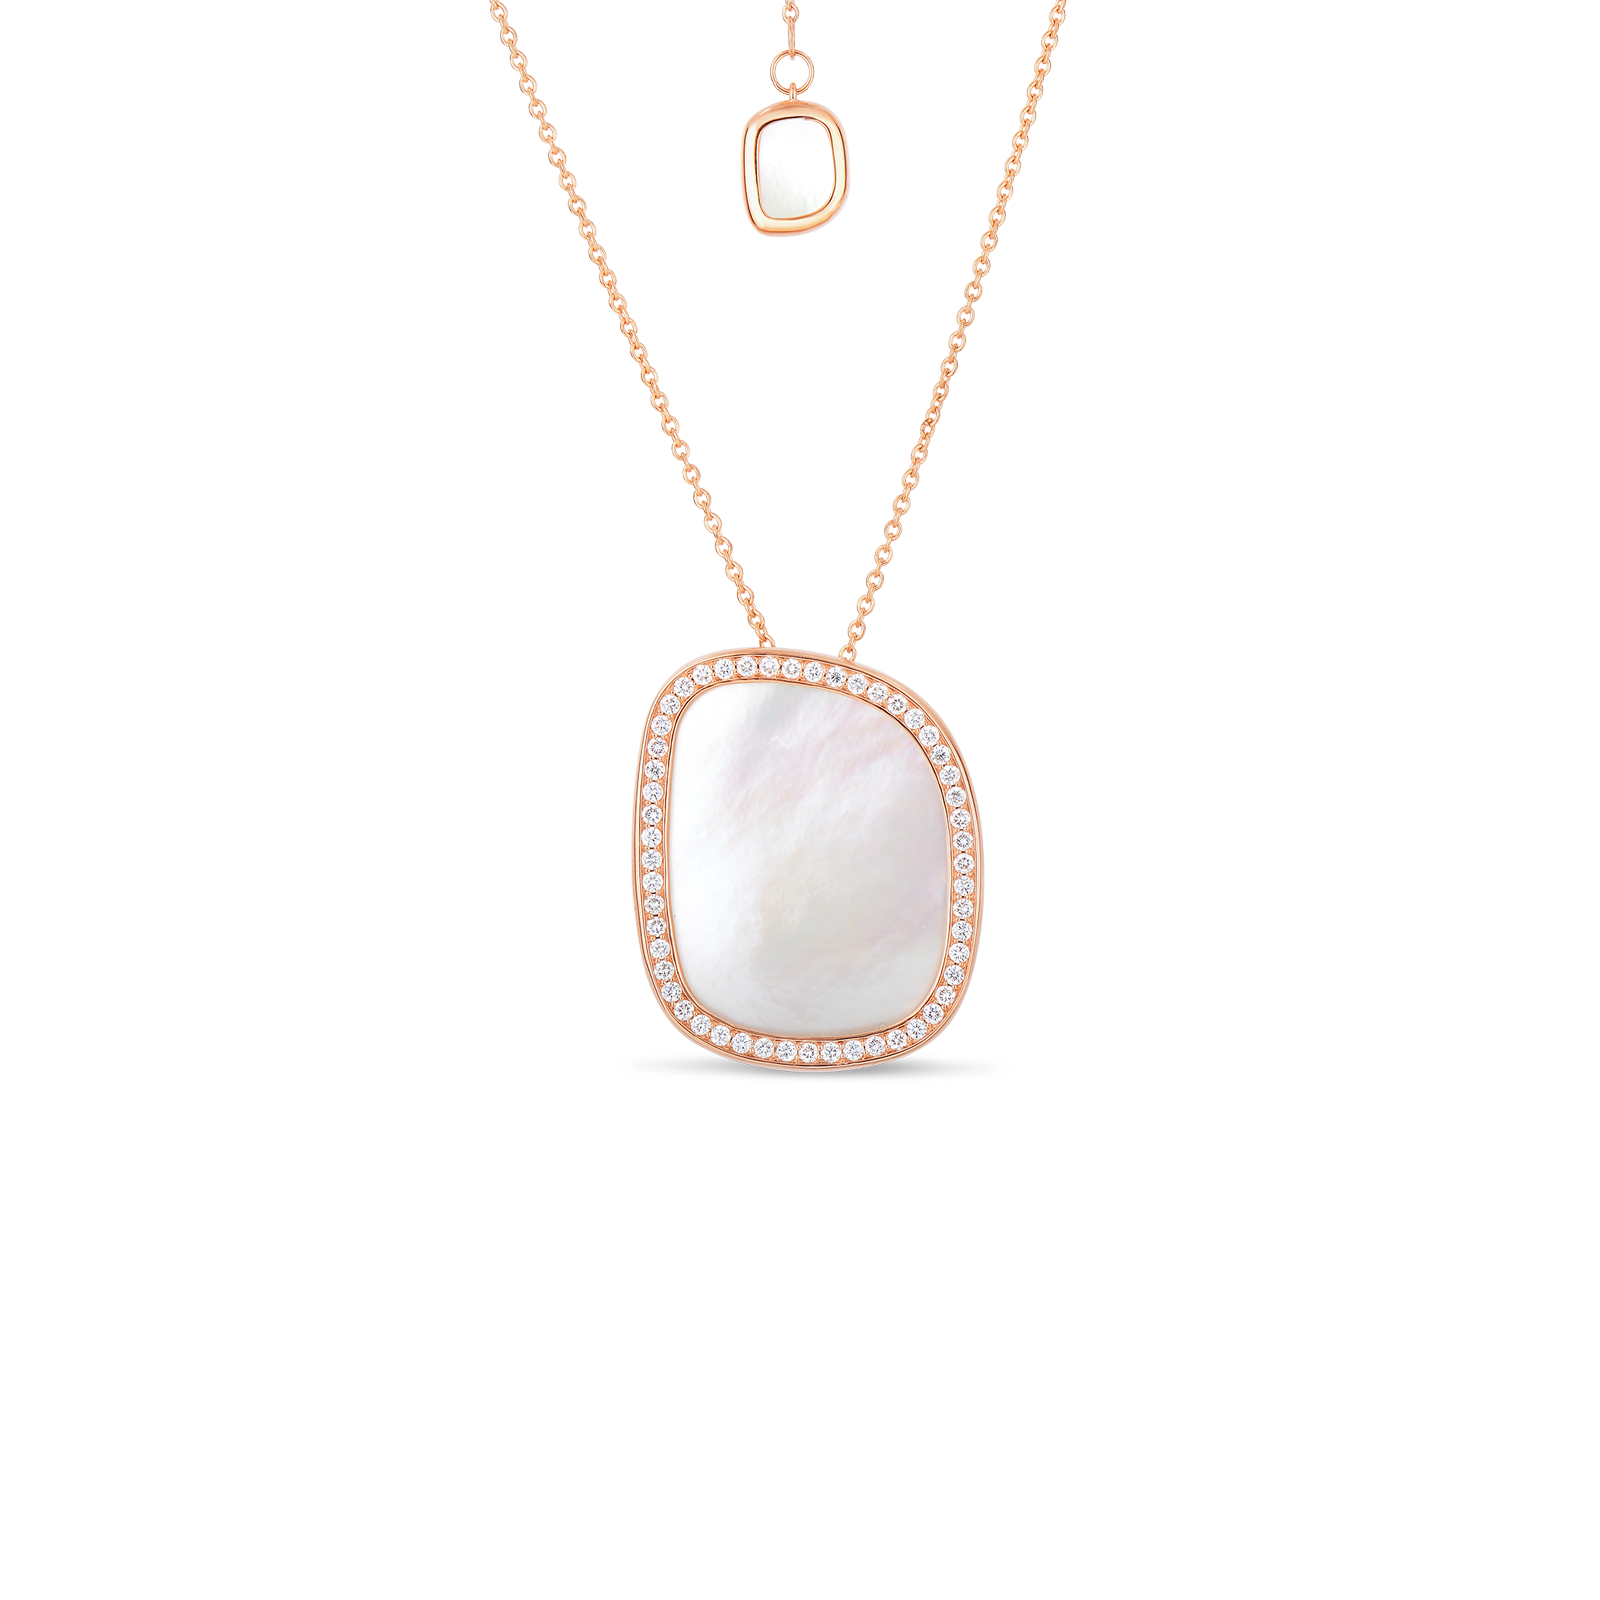 Small chain png. Buy gold pendant with